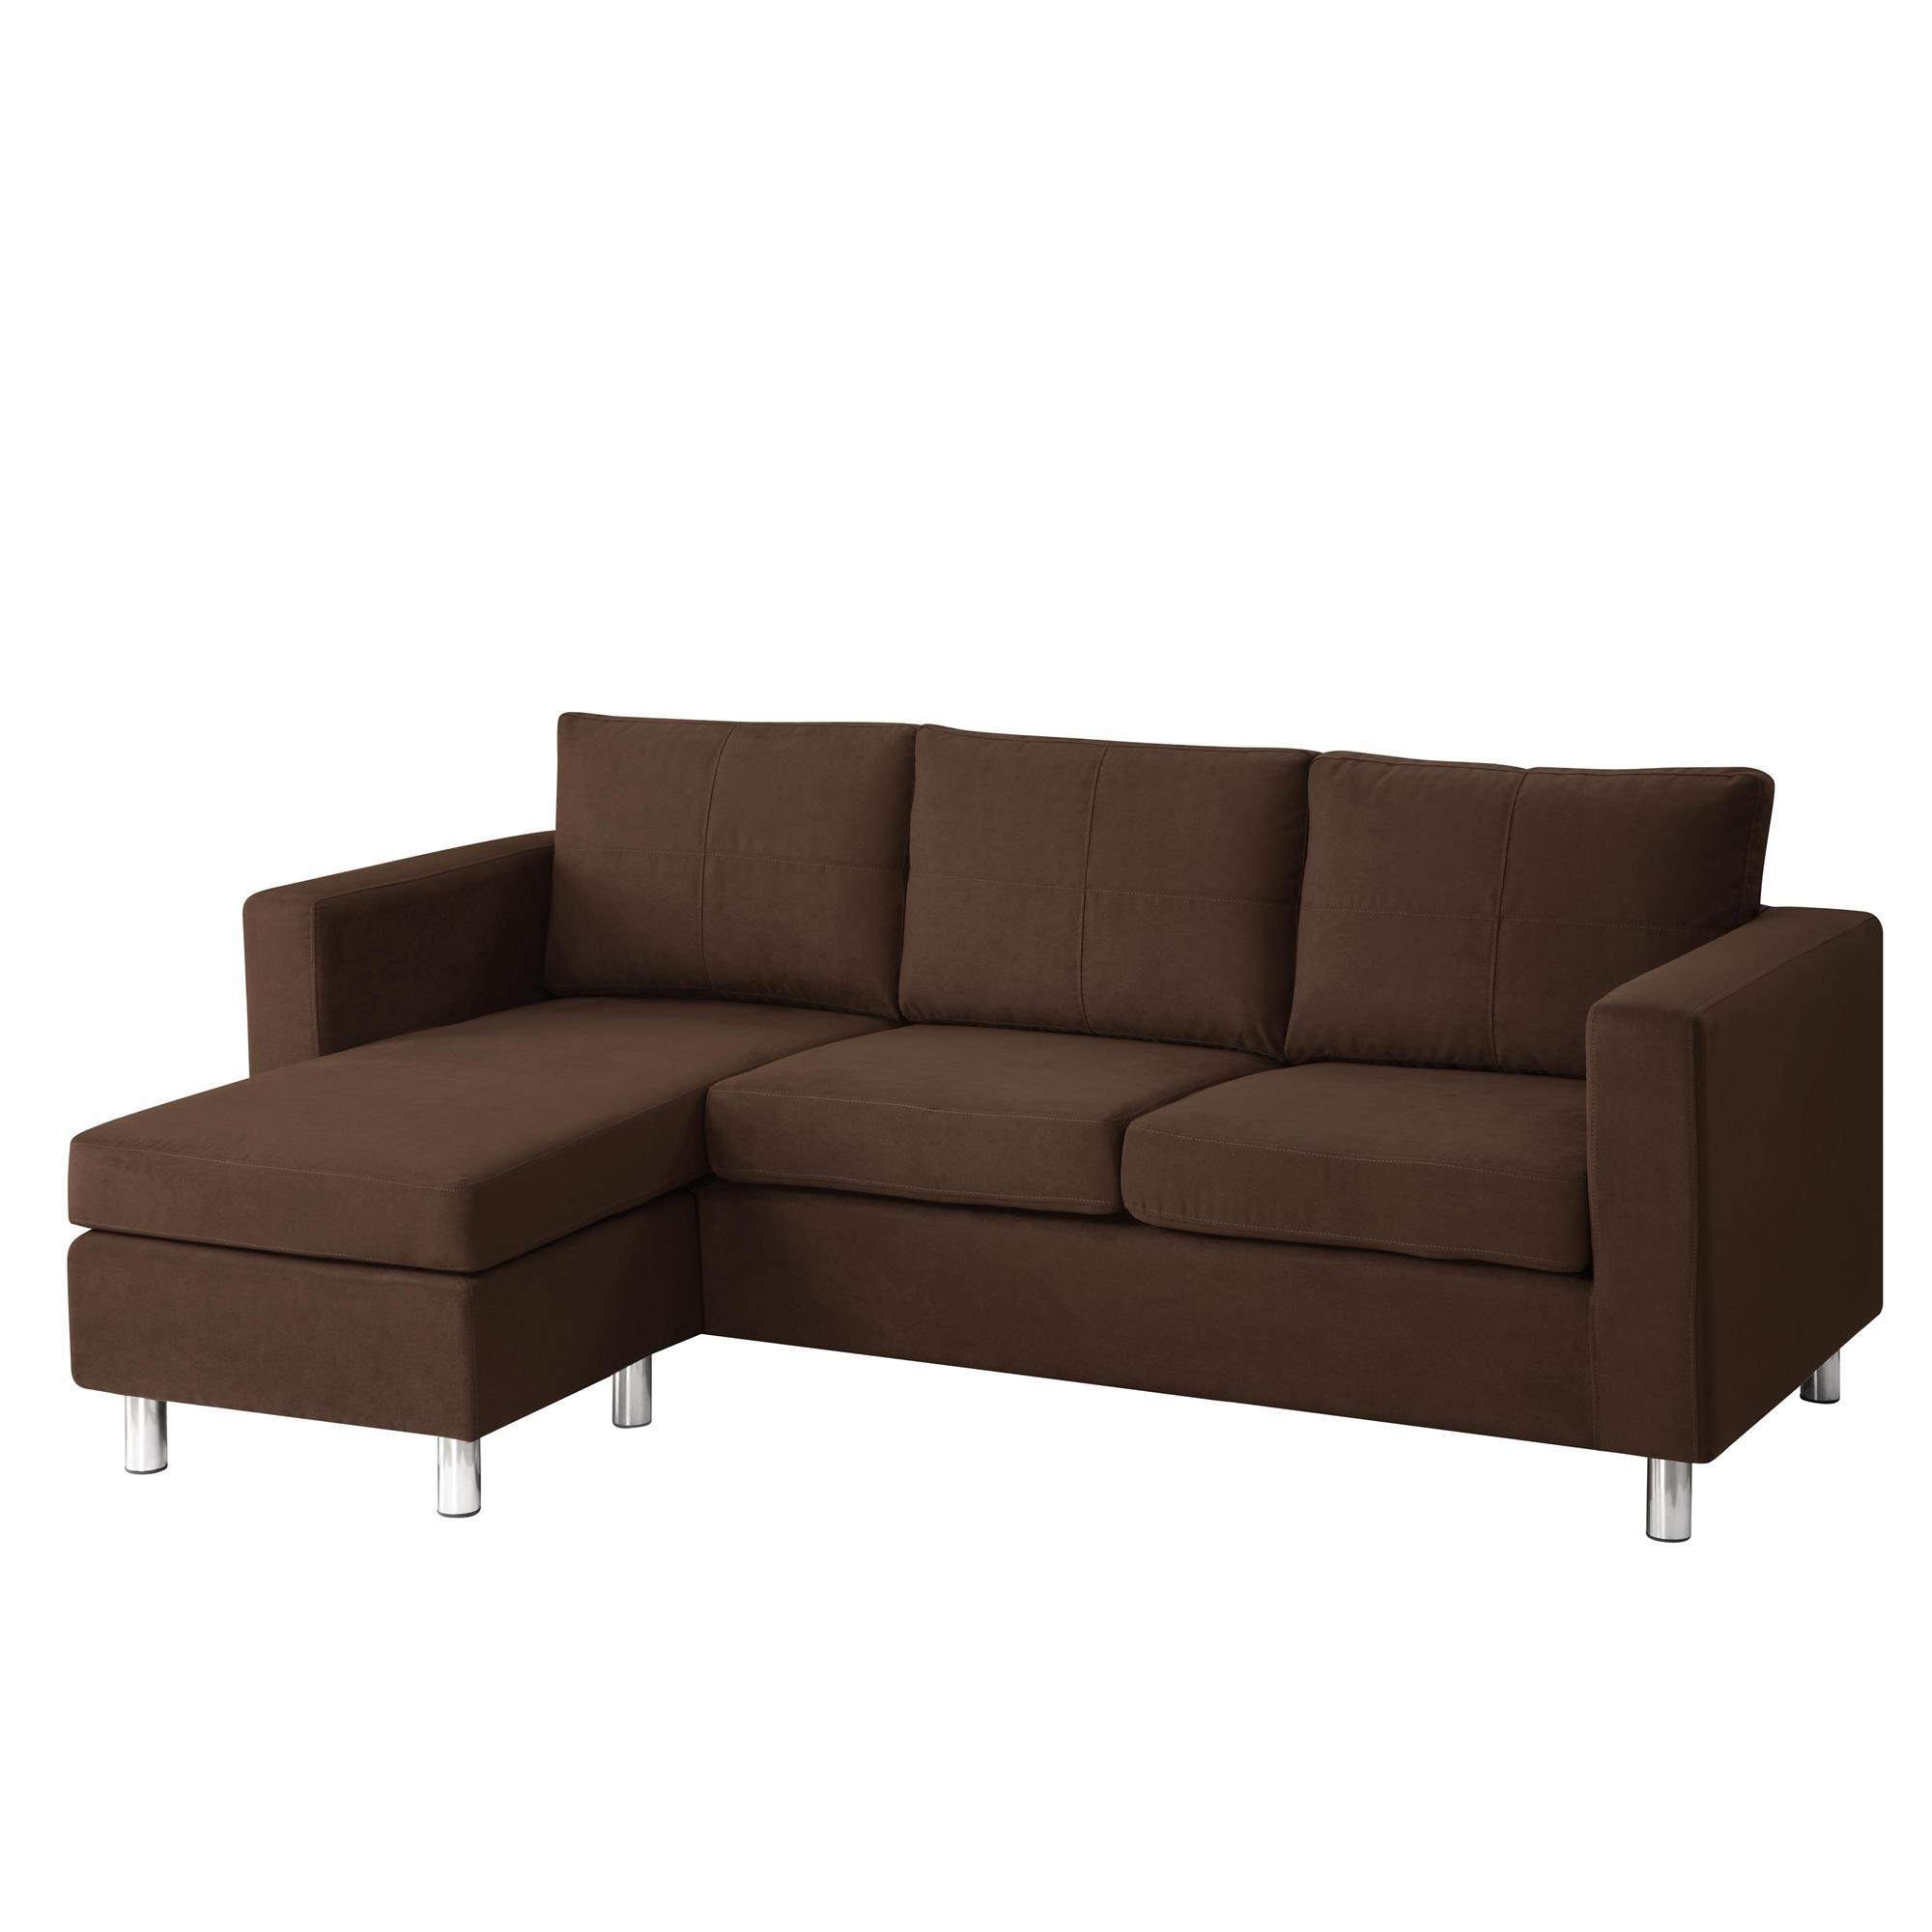 ▻ Sofa : Sss Kimberly Sofa 1 Lovely Small Modern Sectional Sofa Inside Small Modern Sofas (Image 3 of 20)